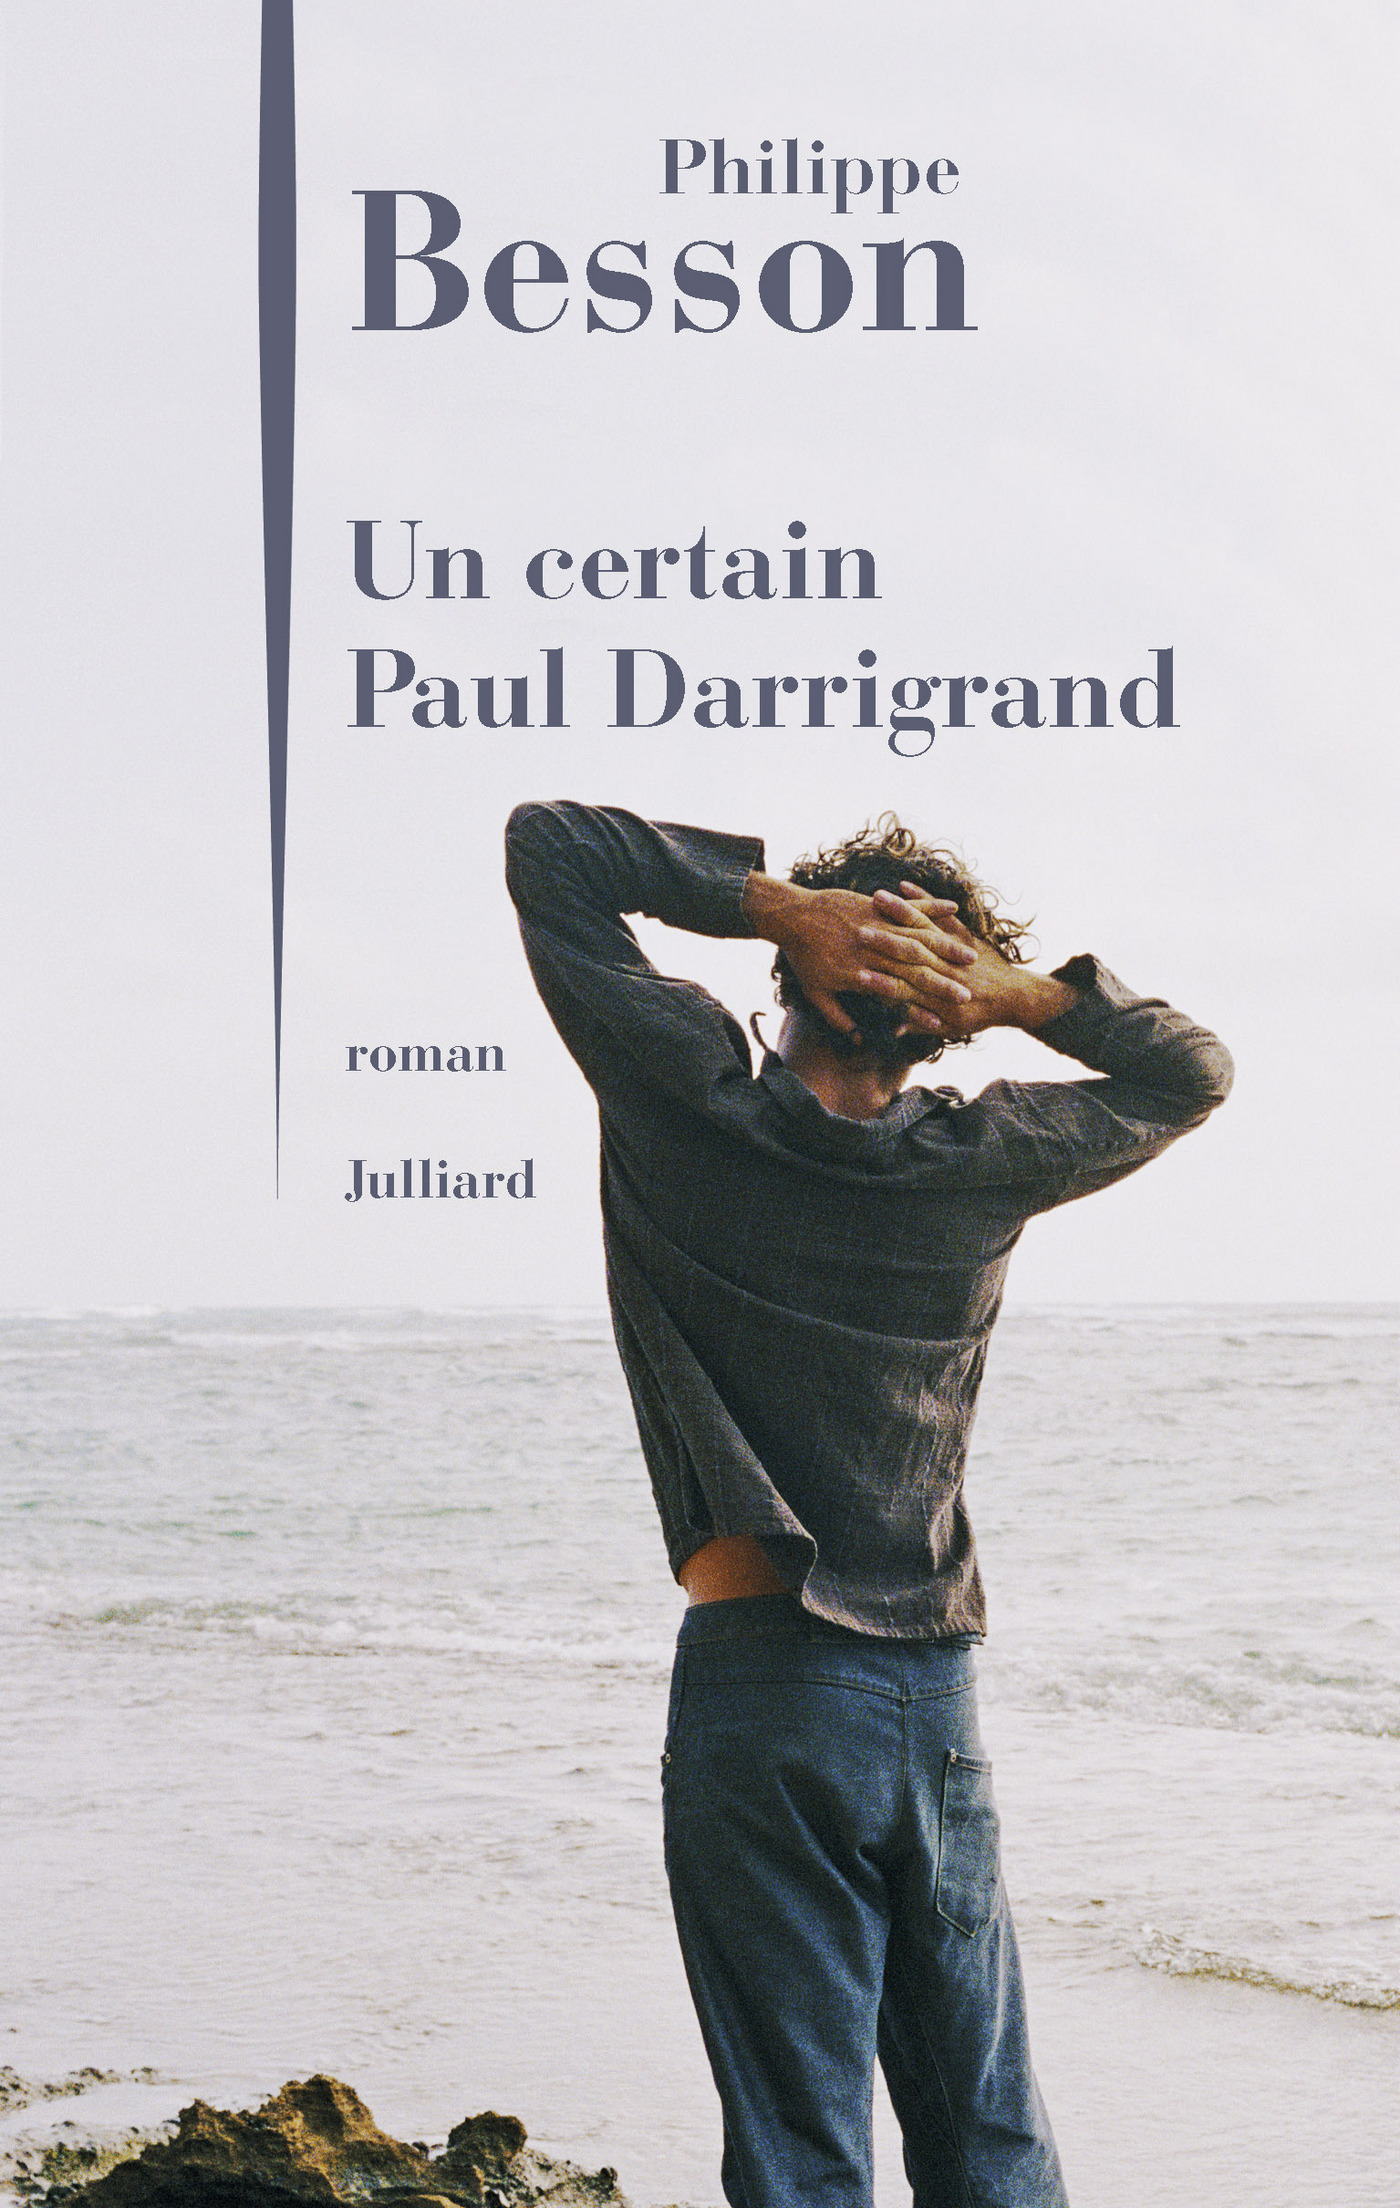 Un certain Paul Darrigrand | BESSON, Philippe